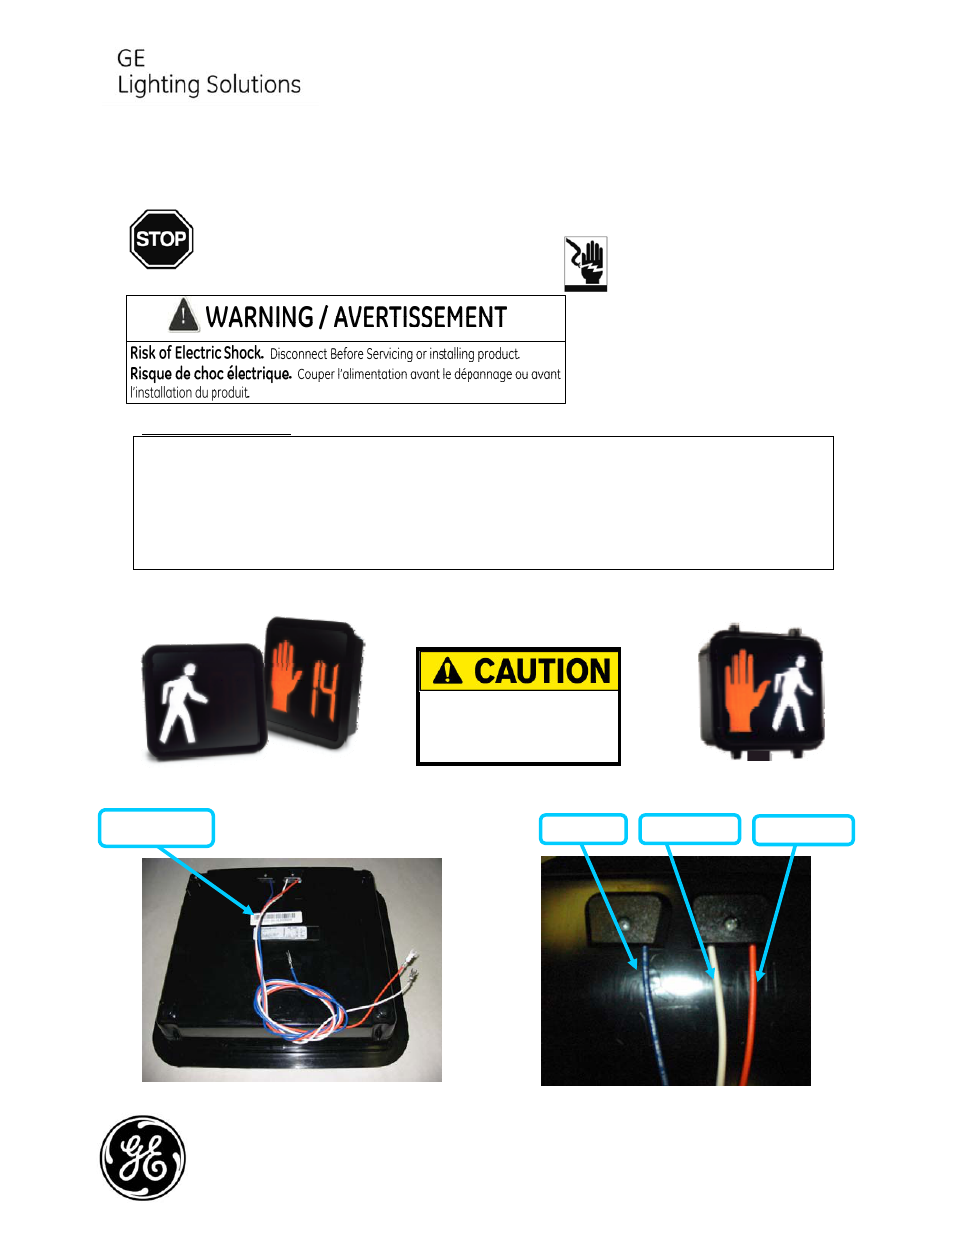 GE Pedestrian Signals Installation Guide - Free PDF Download (1 Pages)